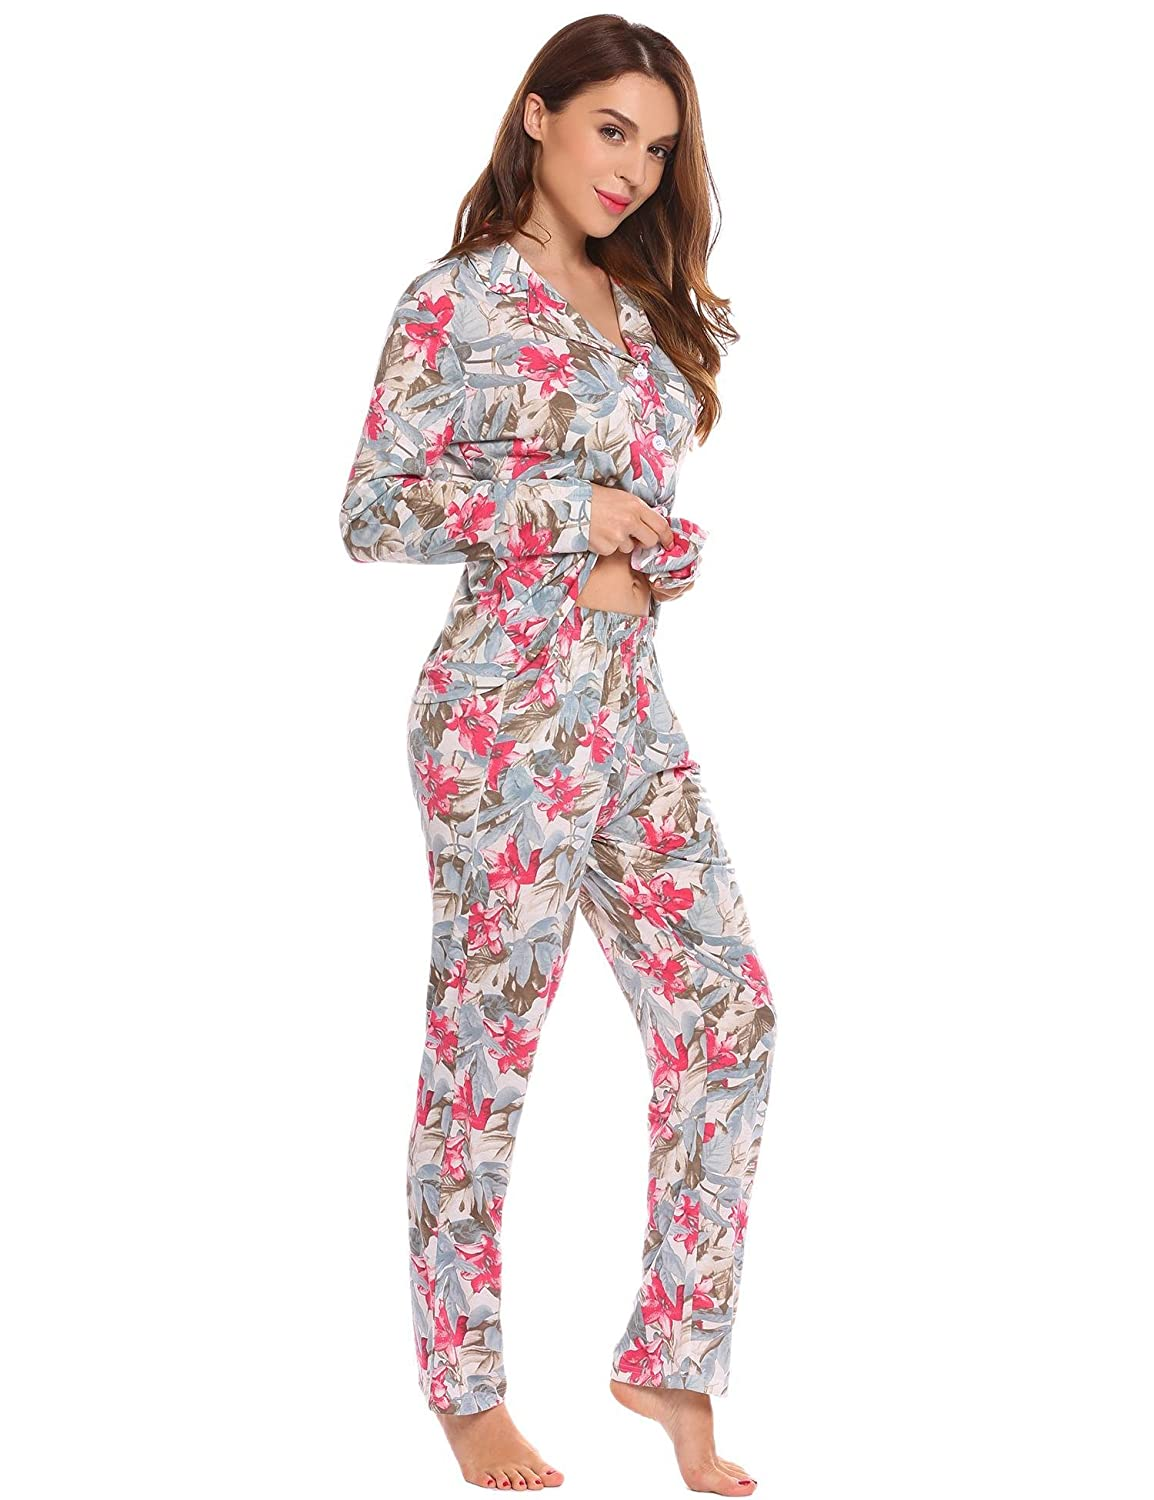 Ekouaer Women s Comfy Floral Print Long Sleeves Floral Pajamas Set Sleepwear  Tops and Pants S-XXL at Amazon Women s Clothing store  f2e7502b7